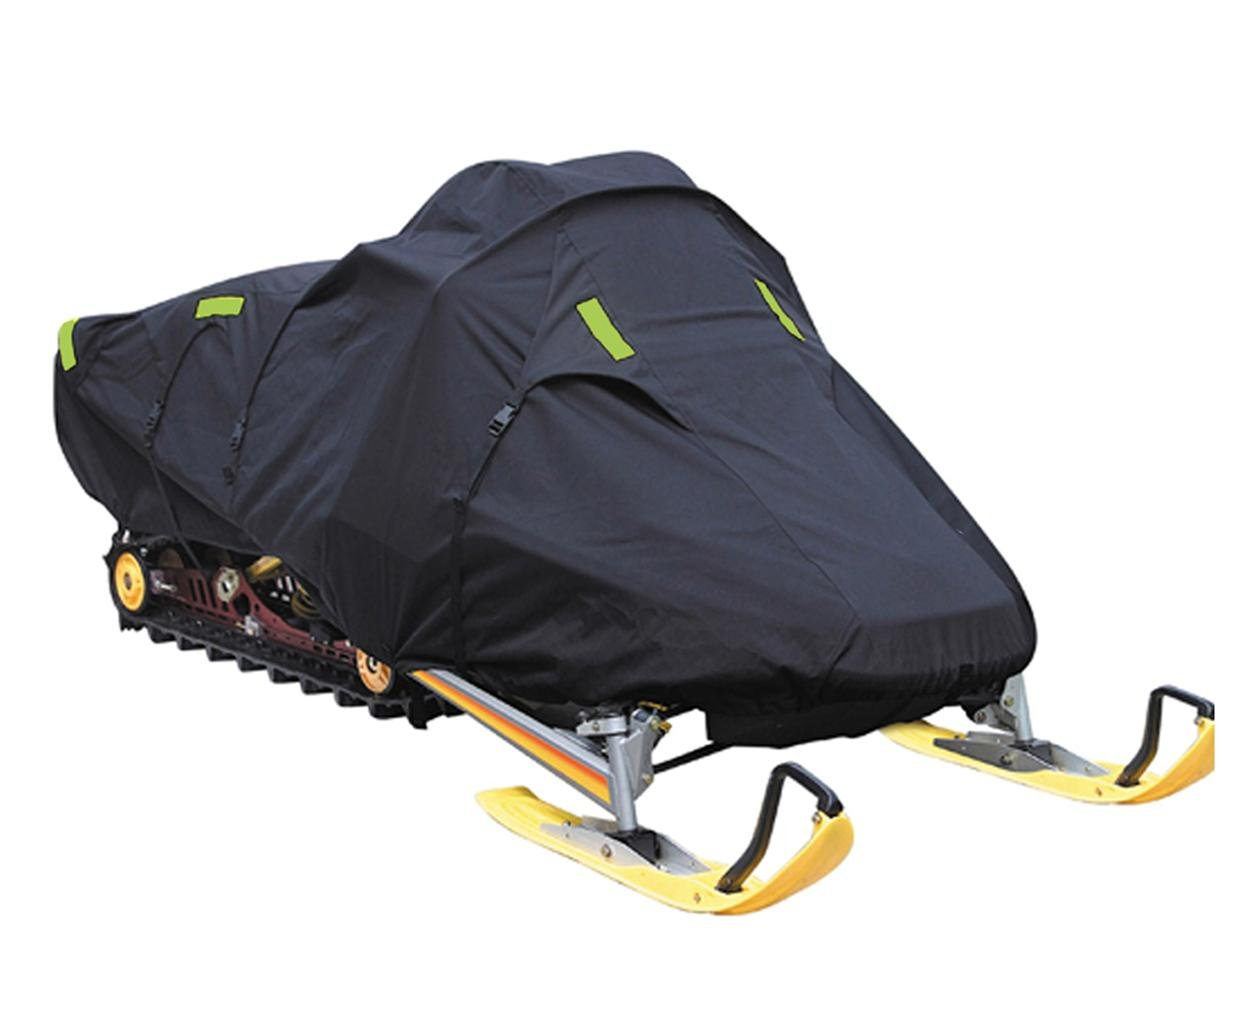 Trailerable Snowmobile Snow Machine Sled Cover Arctic Cat M1000 162 Sno Pro LE 2009 by SBU